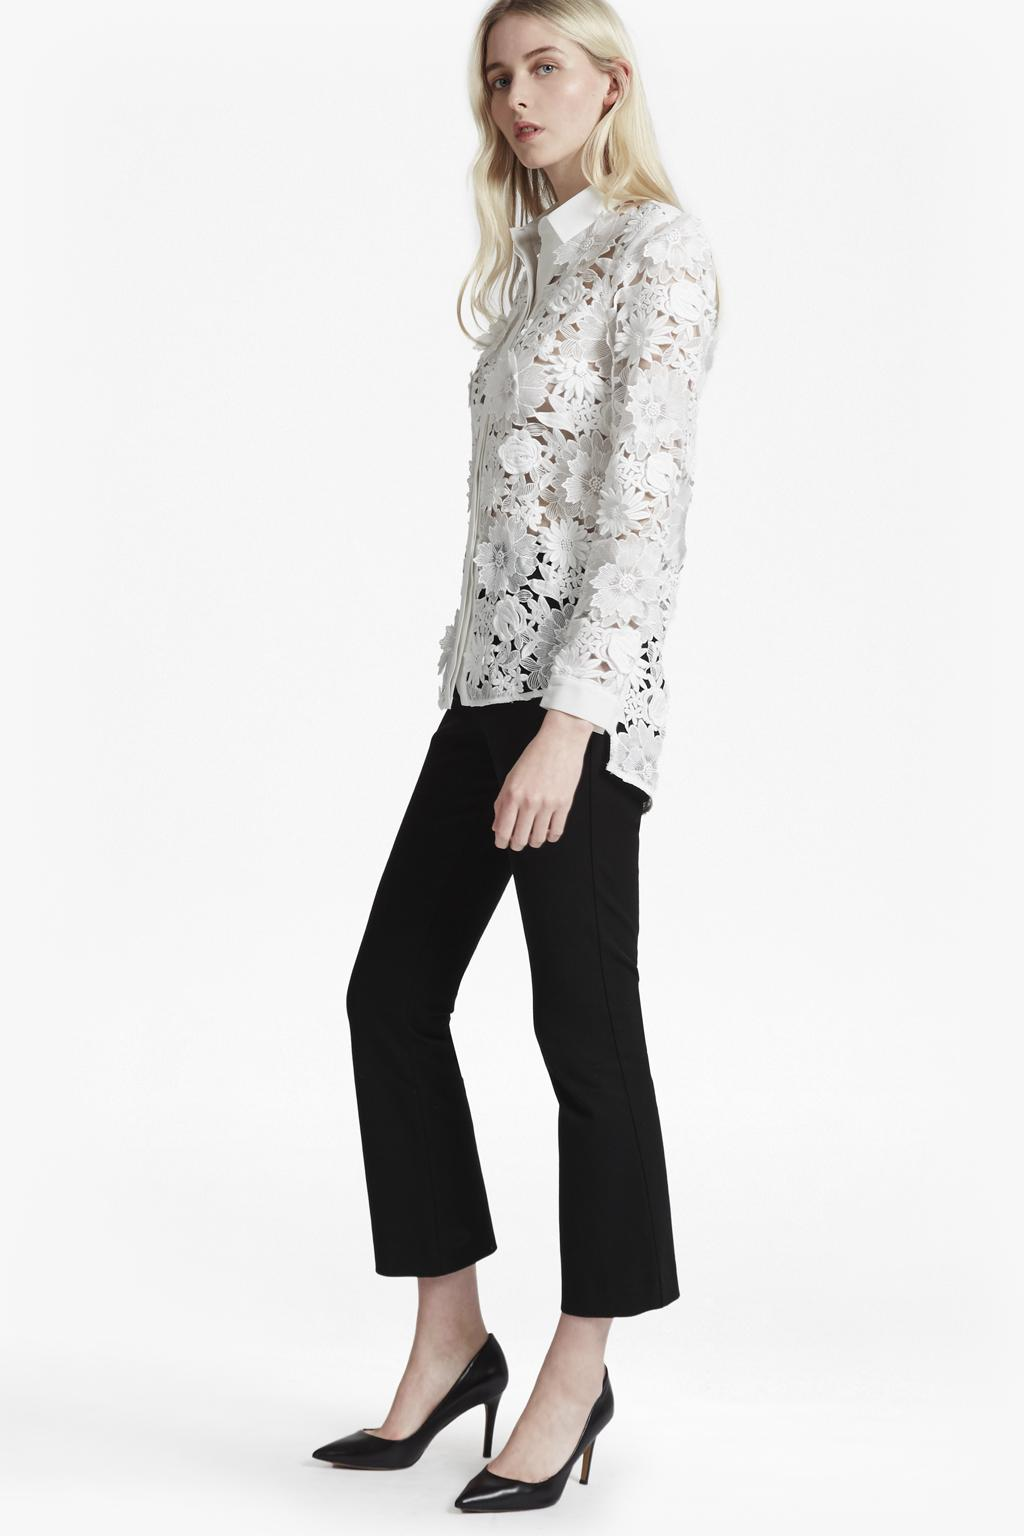 8d76d323eb1e4 French Connection Manzoni 3d Floral Lace Shirt in White - Lyst